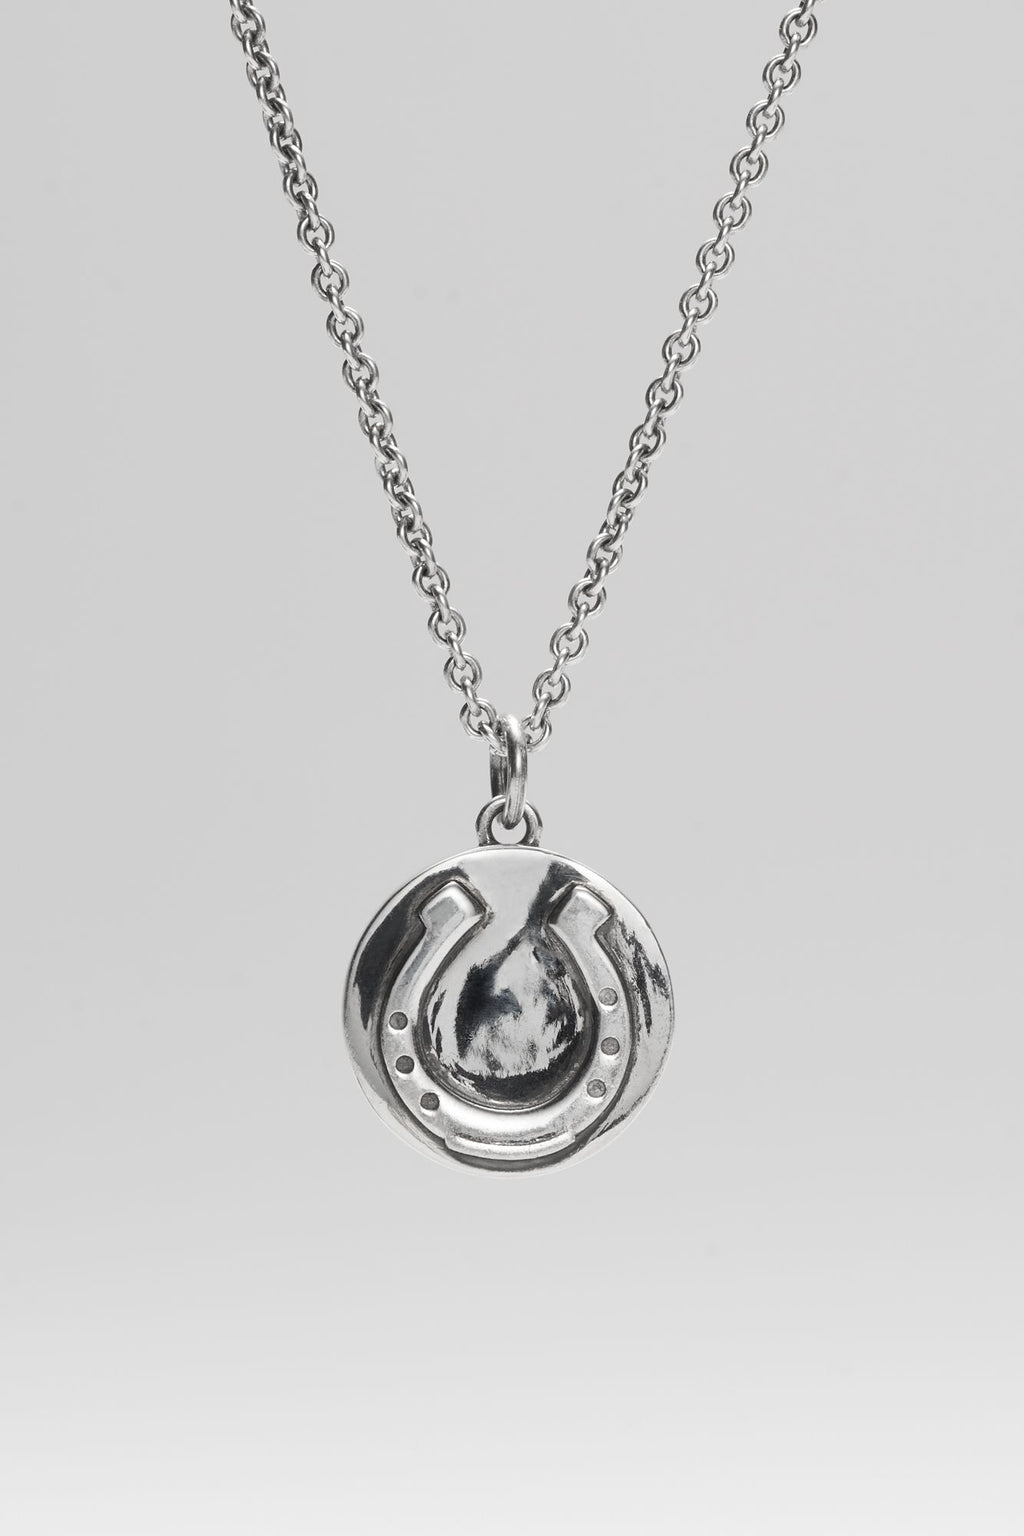 Horseshoe Pendant + Chain